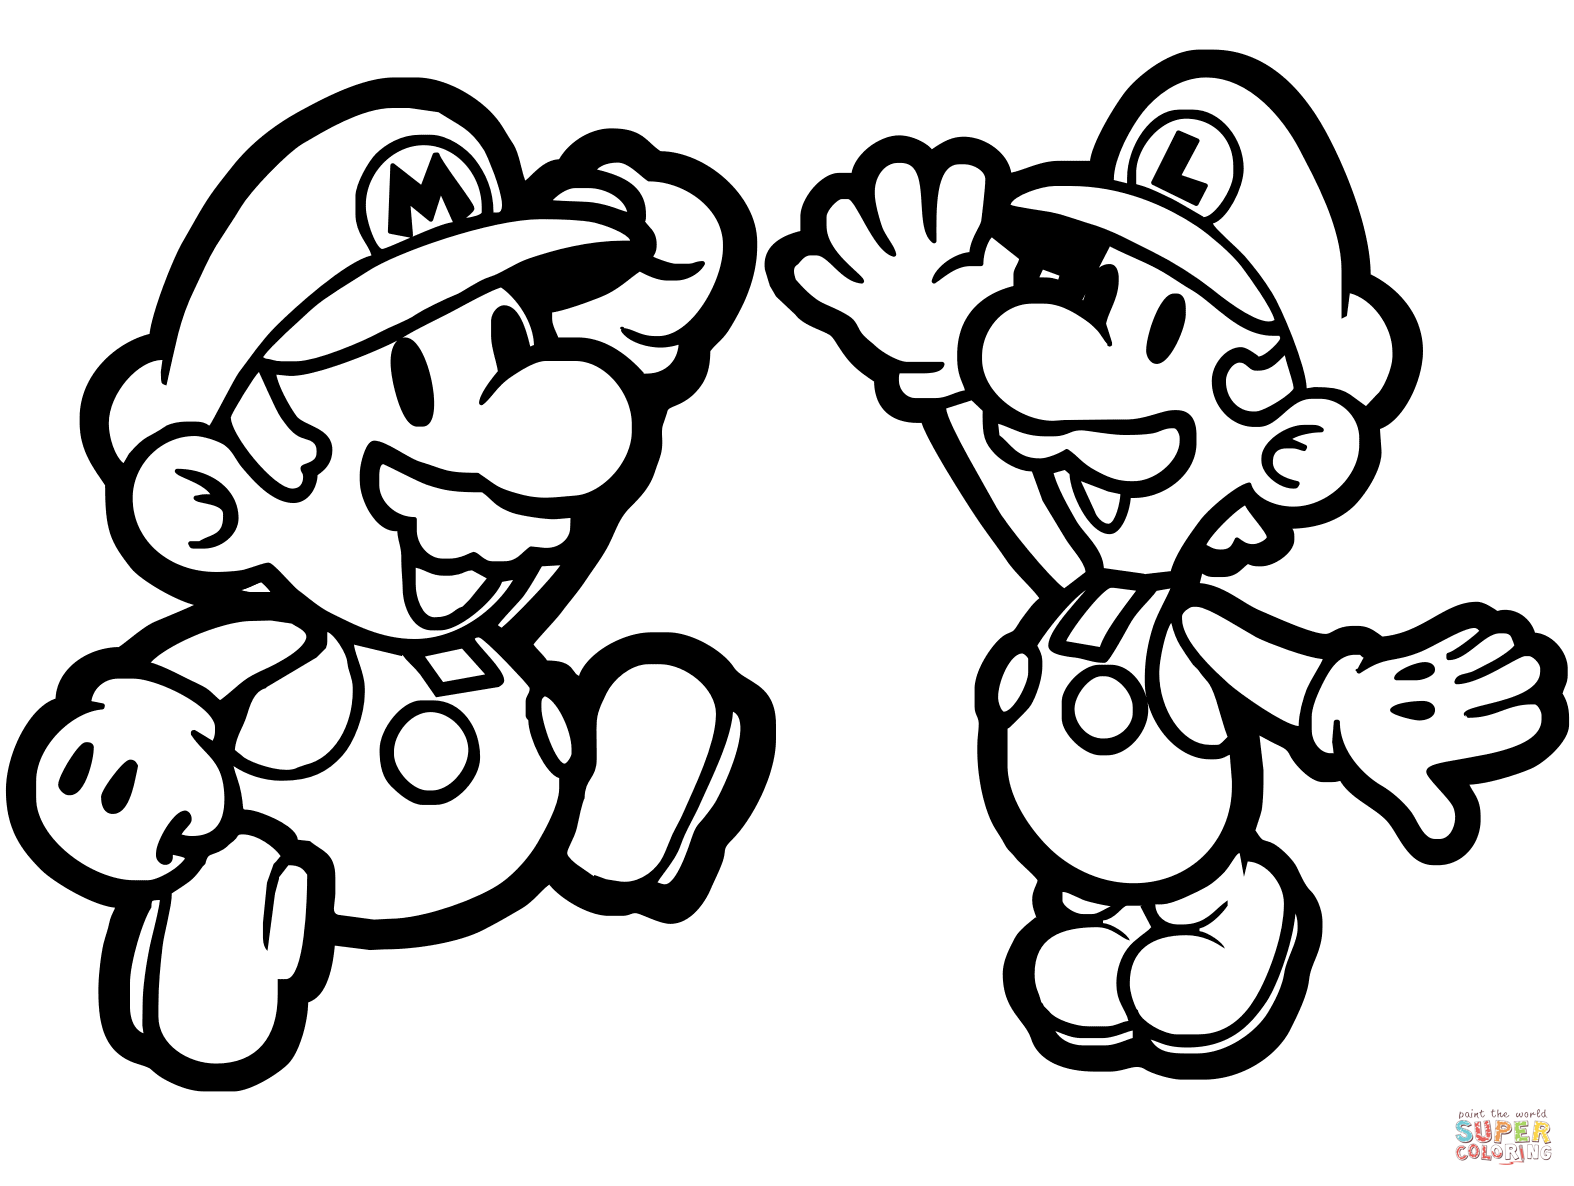 Top Image Paper Mario Coloring Pages Super Mario Coloring Pages Mario Coloring Pages Coloring Pages